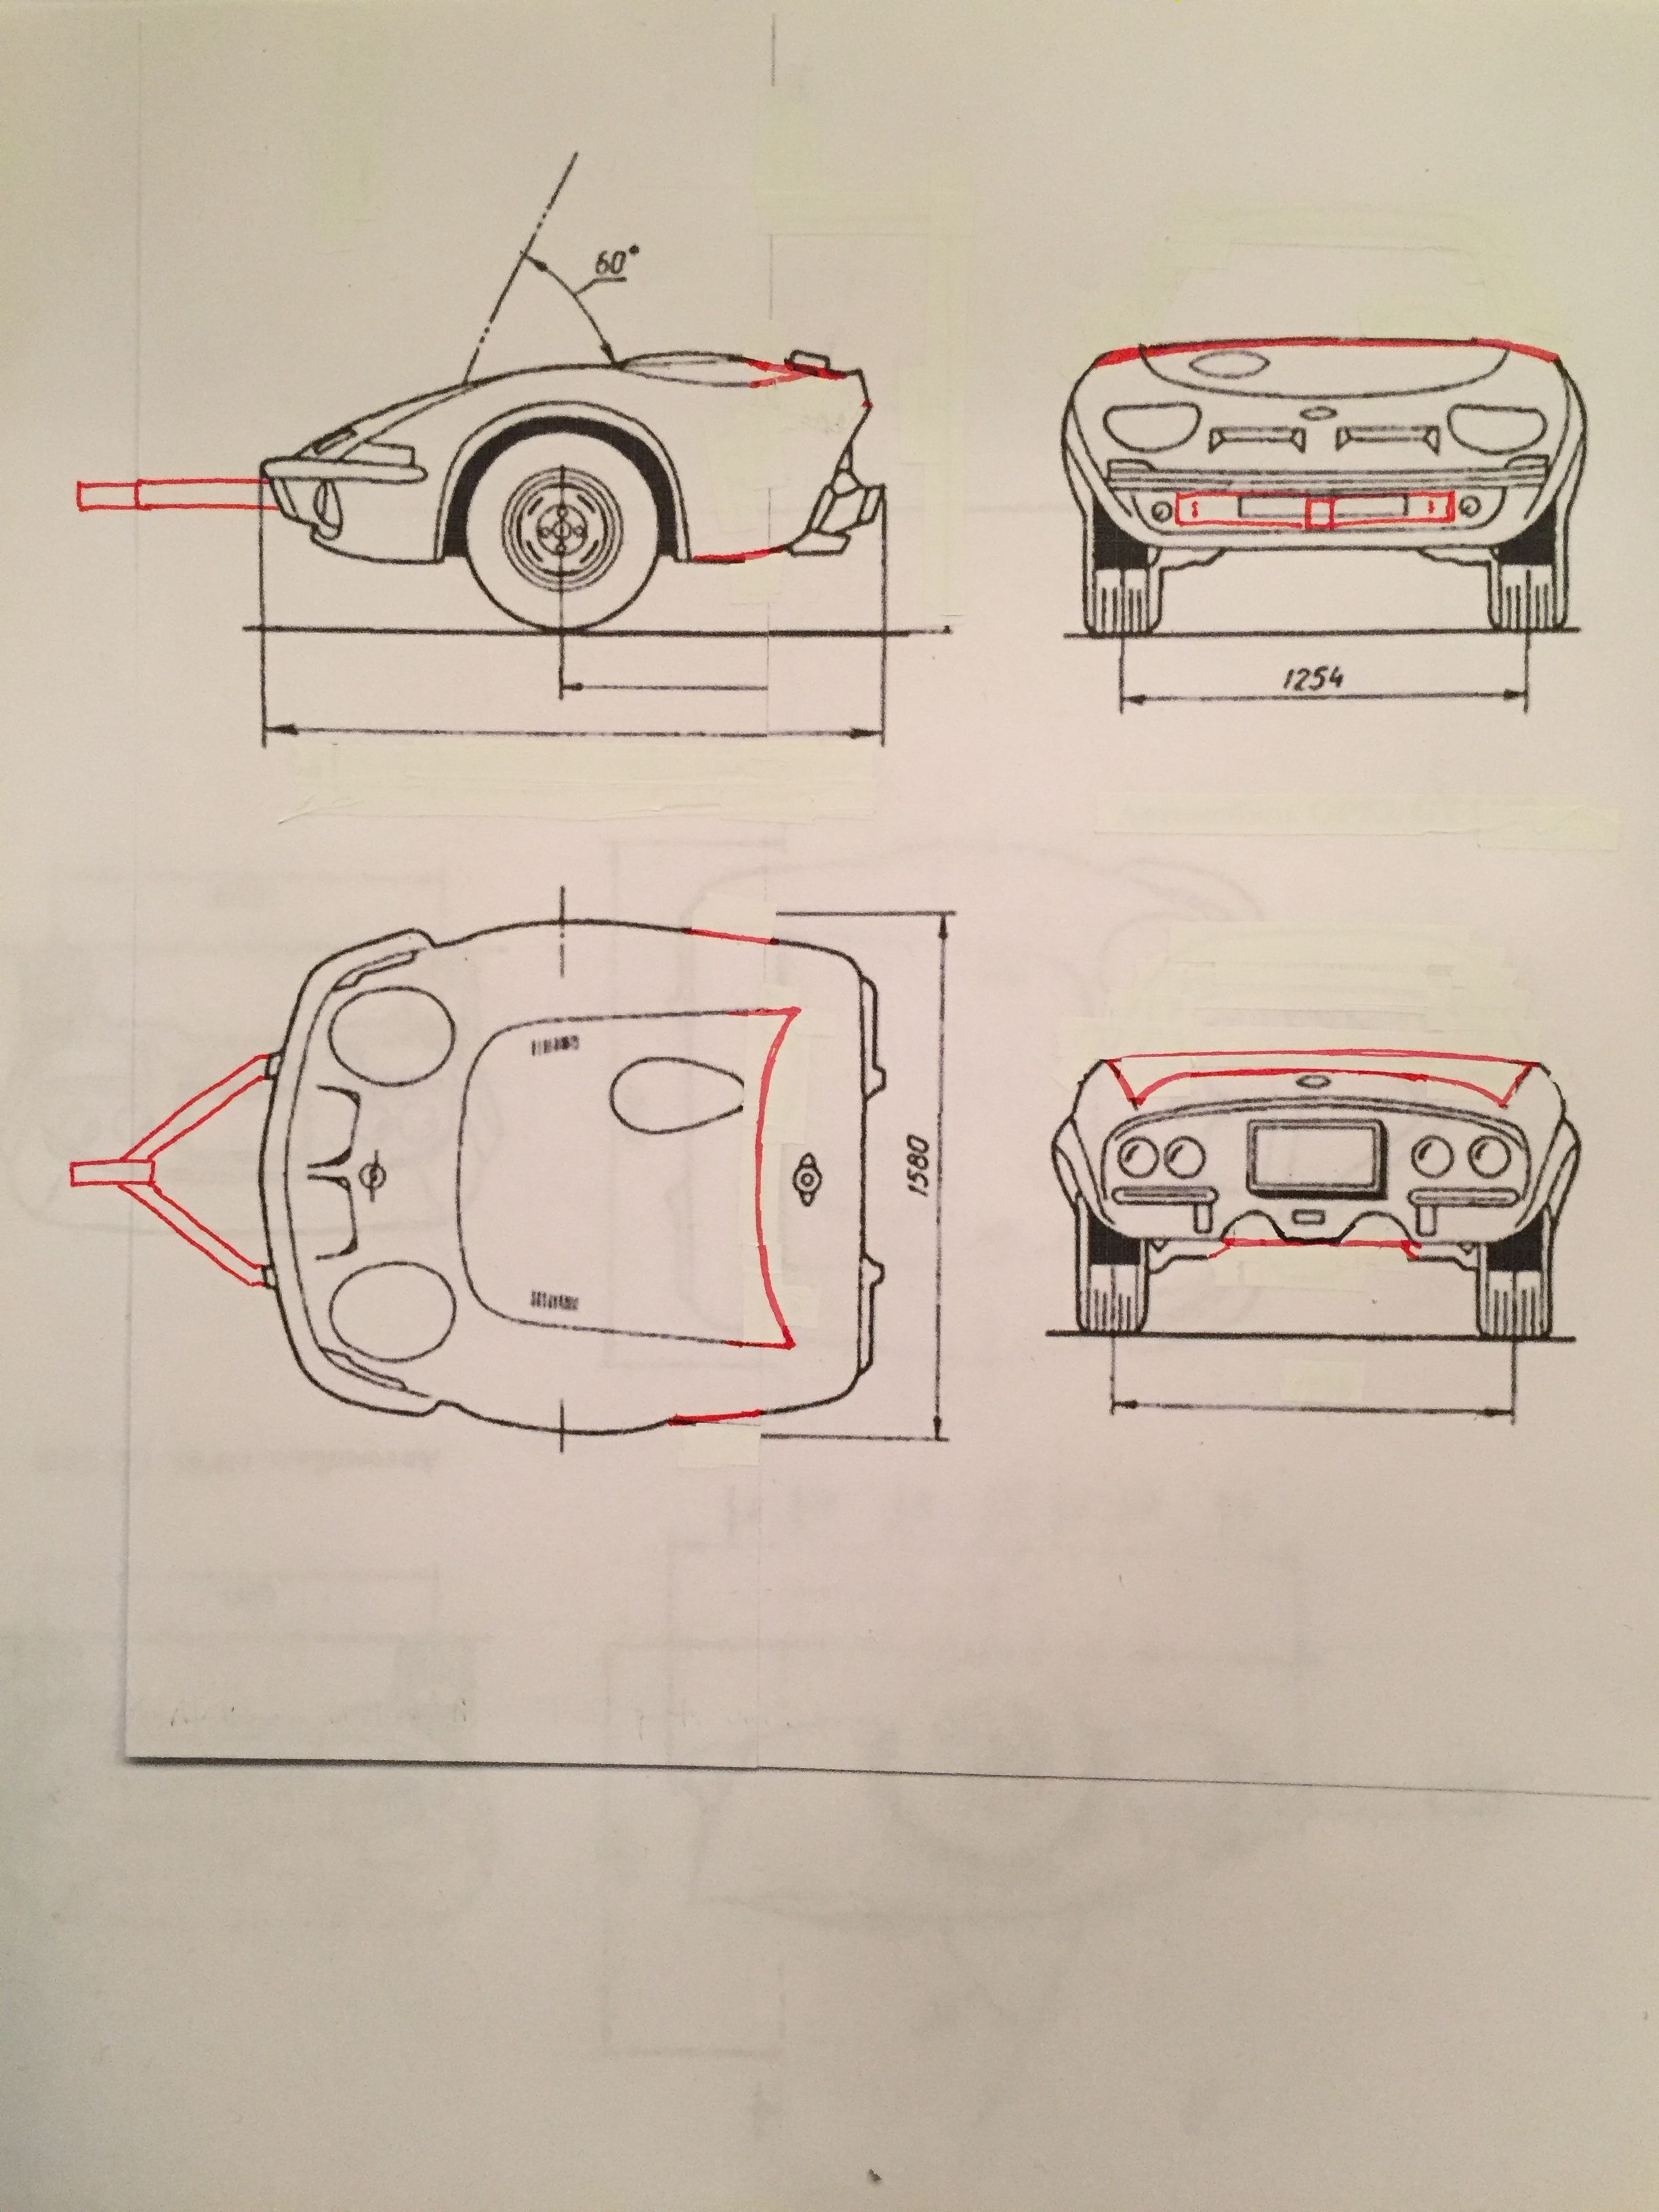 My idea for an Opel GT trailer: use the front axle. Cut at the firewall and  graft on the kamm tail. One of my parts cars doesn't have floors, so.